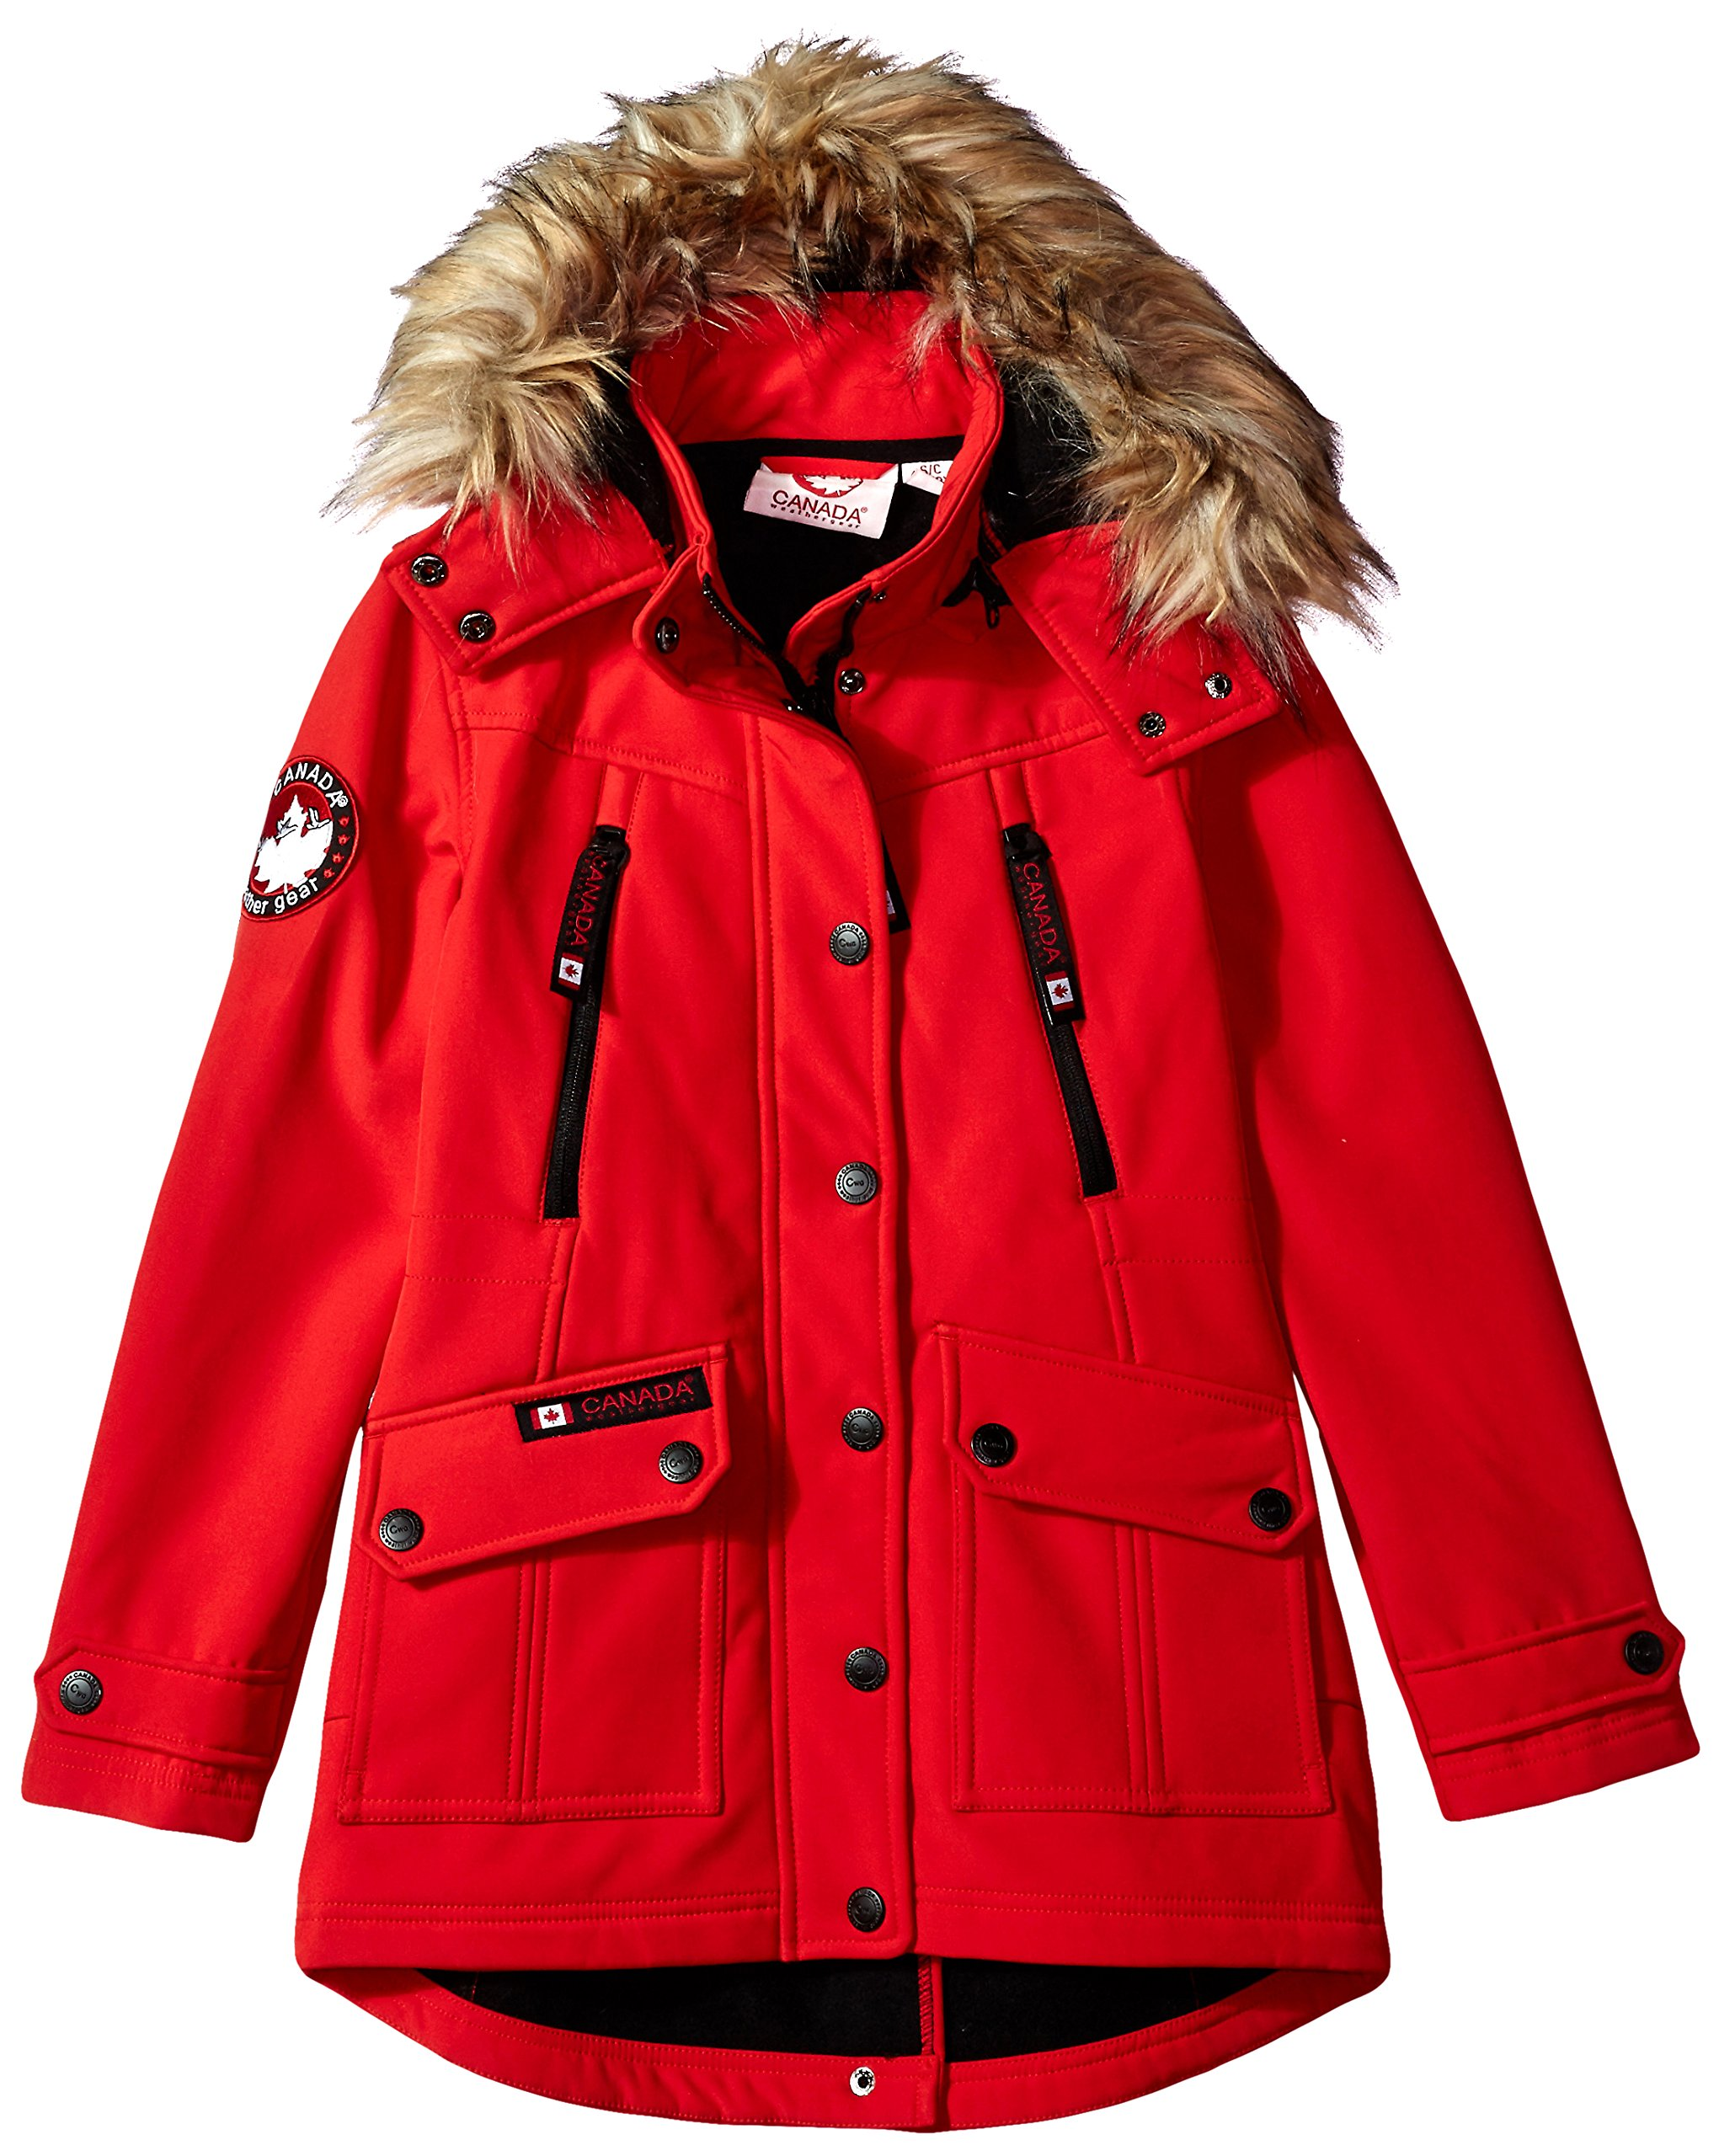 Canada Weather Gear Big Girls' Long Outerwear Jacket (More Styles Available), Softshell-CW051-Red, 7/8